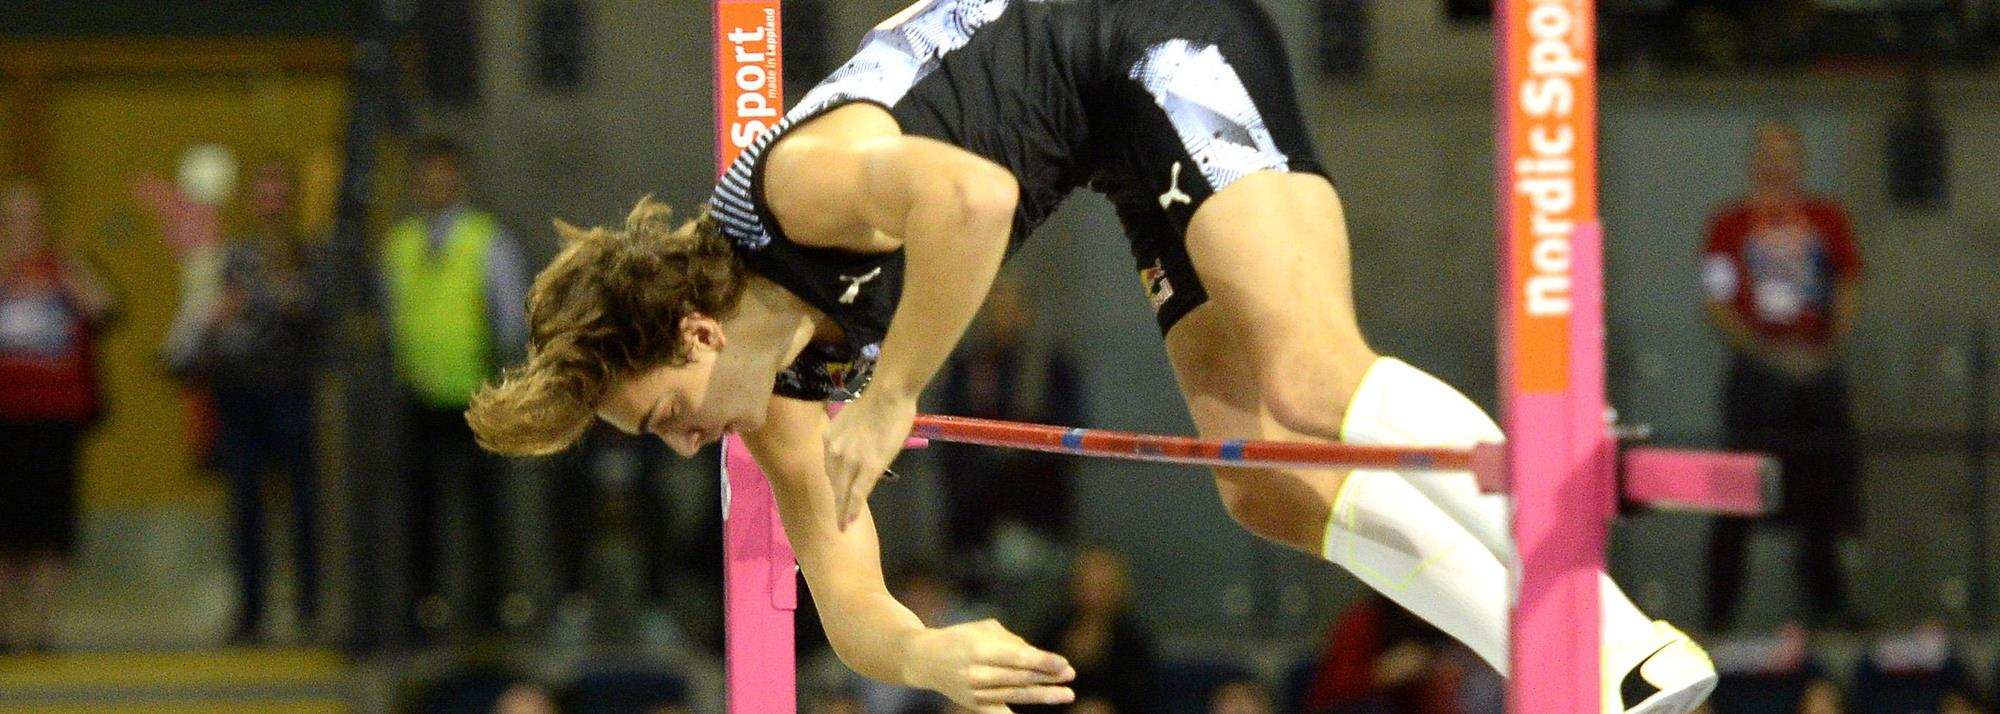 Duplantis set to take centre stage in Lievin